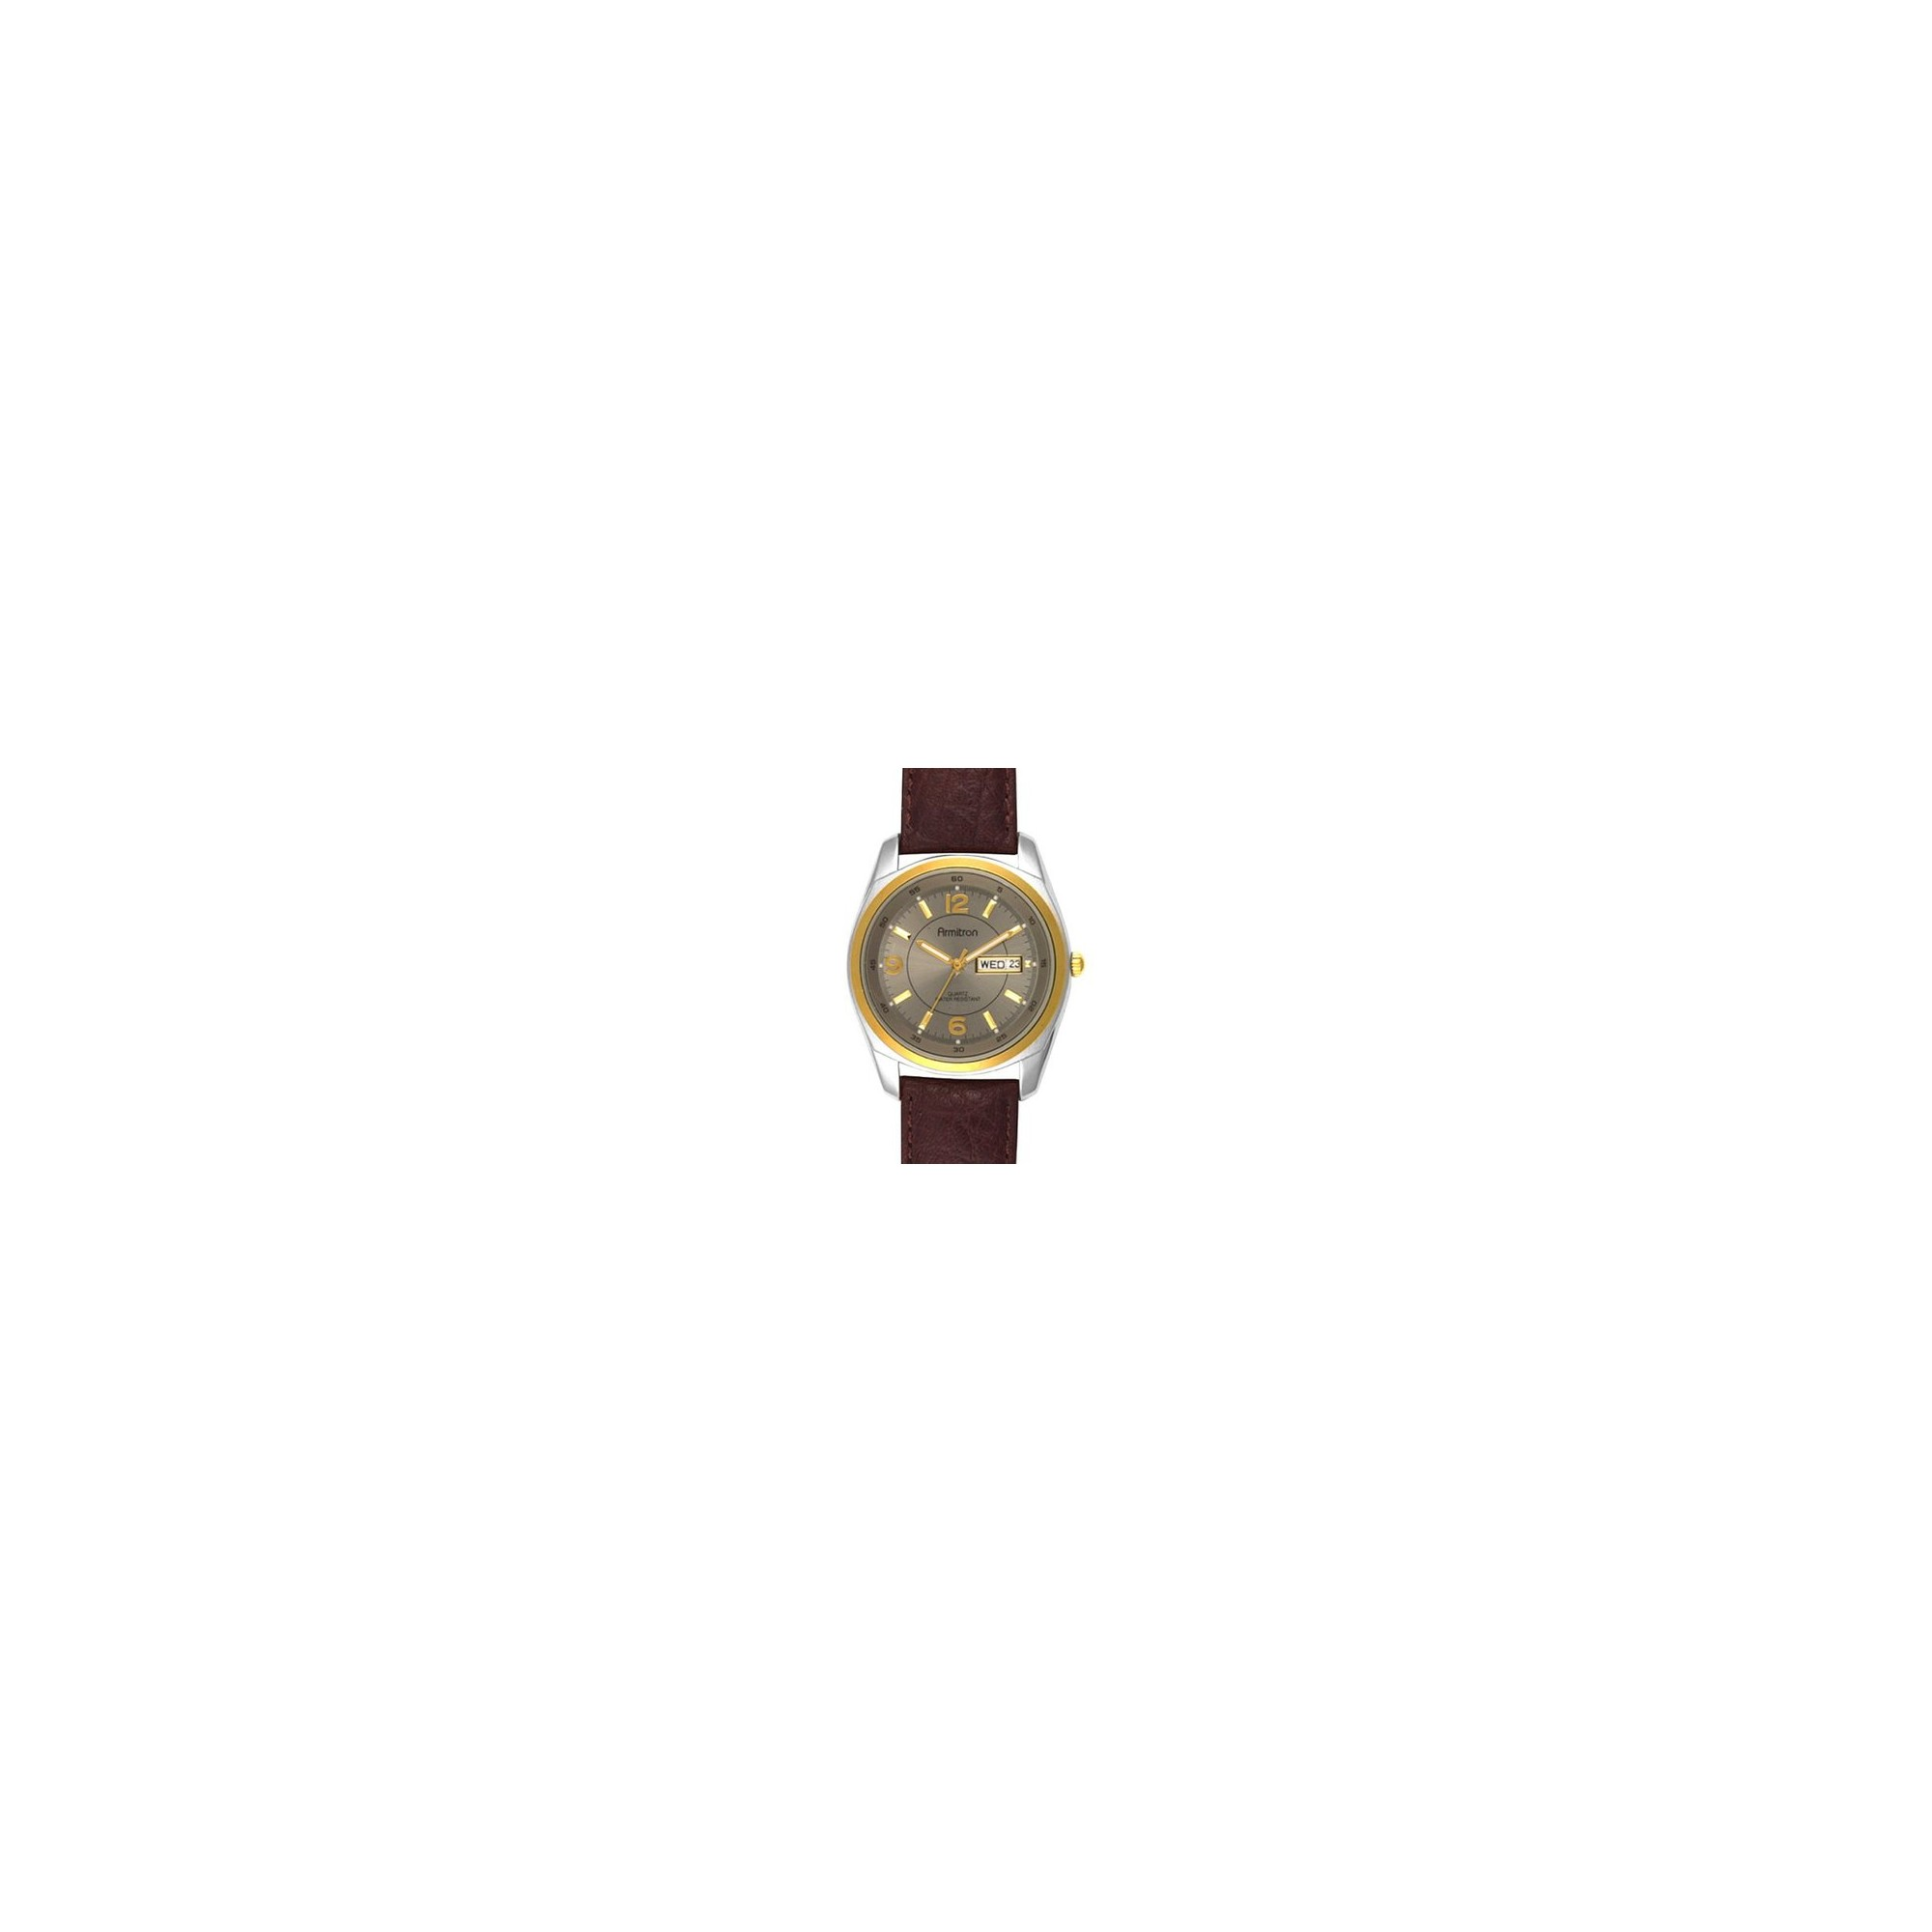 Men's Armitron 2-Tone Watch with Brown Leather Strap, Size: Small, Gold Silver